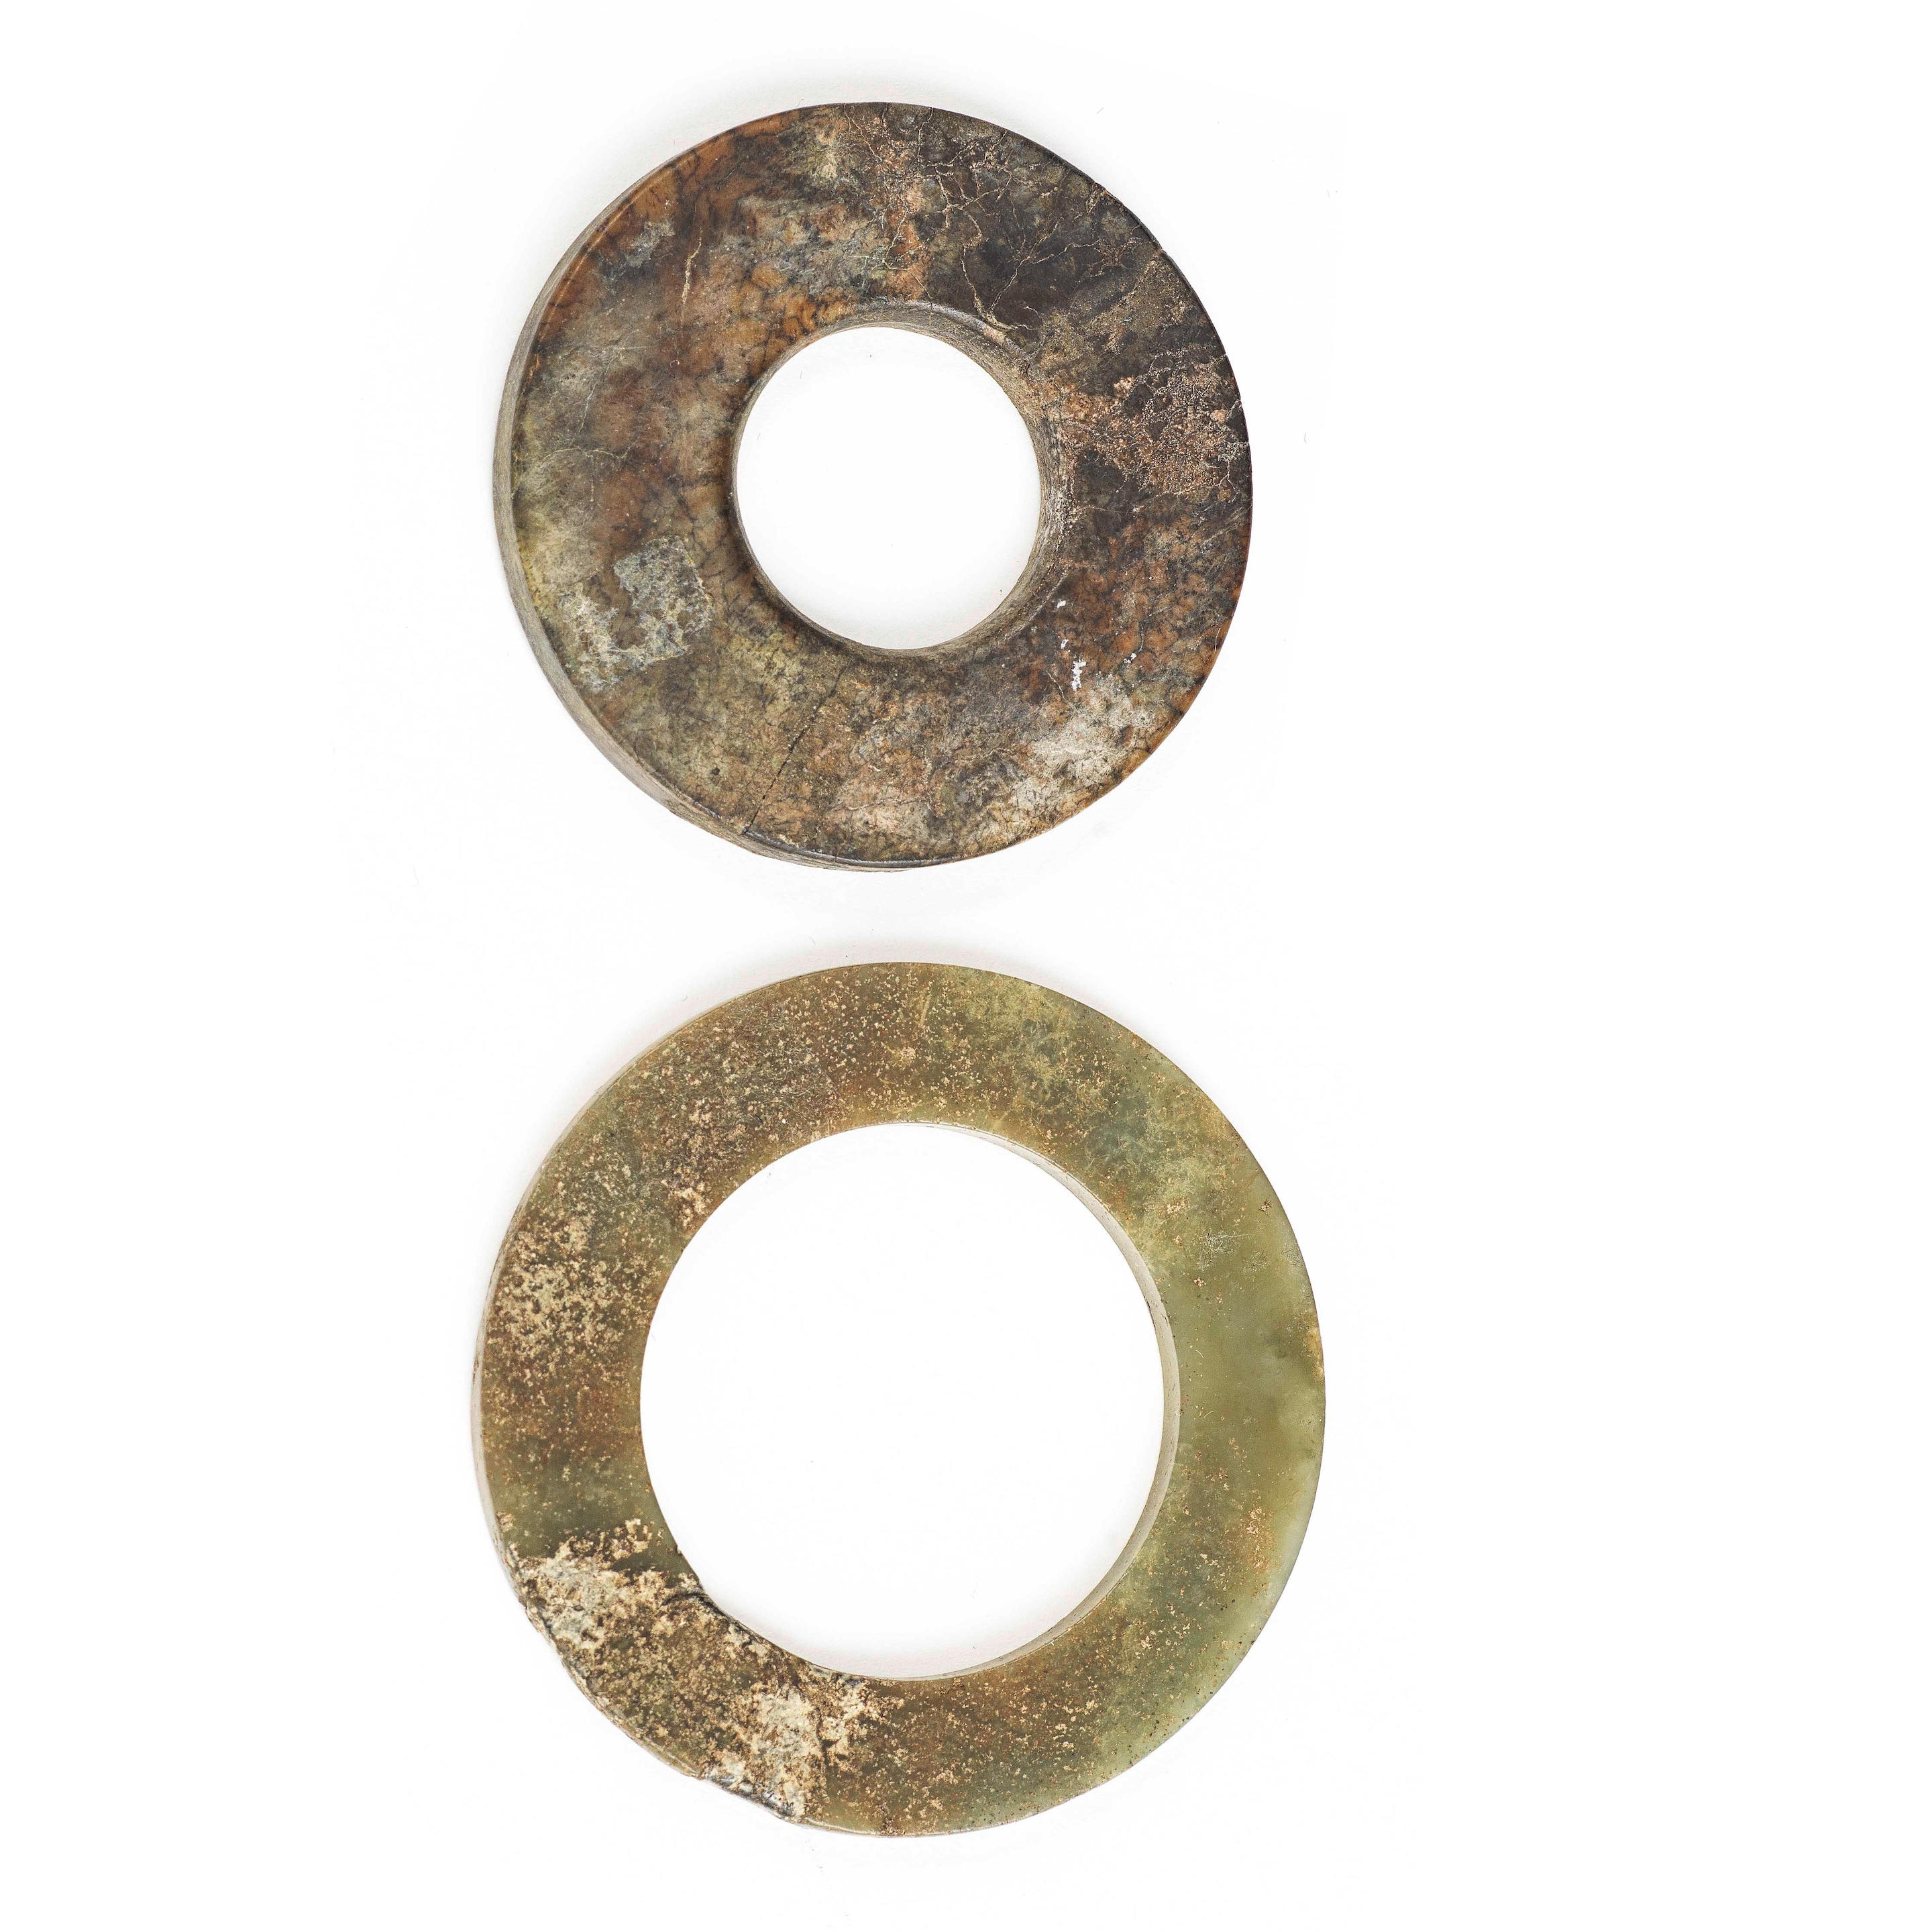 A JADE DISC, BI, AND A JADE RING, HUAN Warring States/Han Dynasty or later (2)